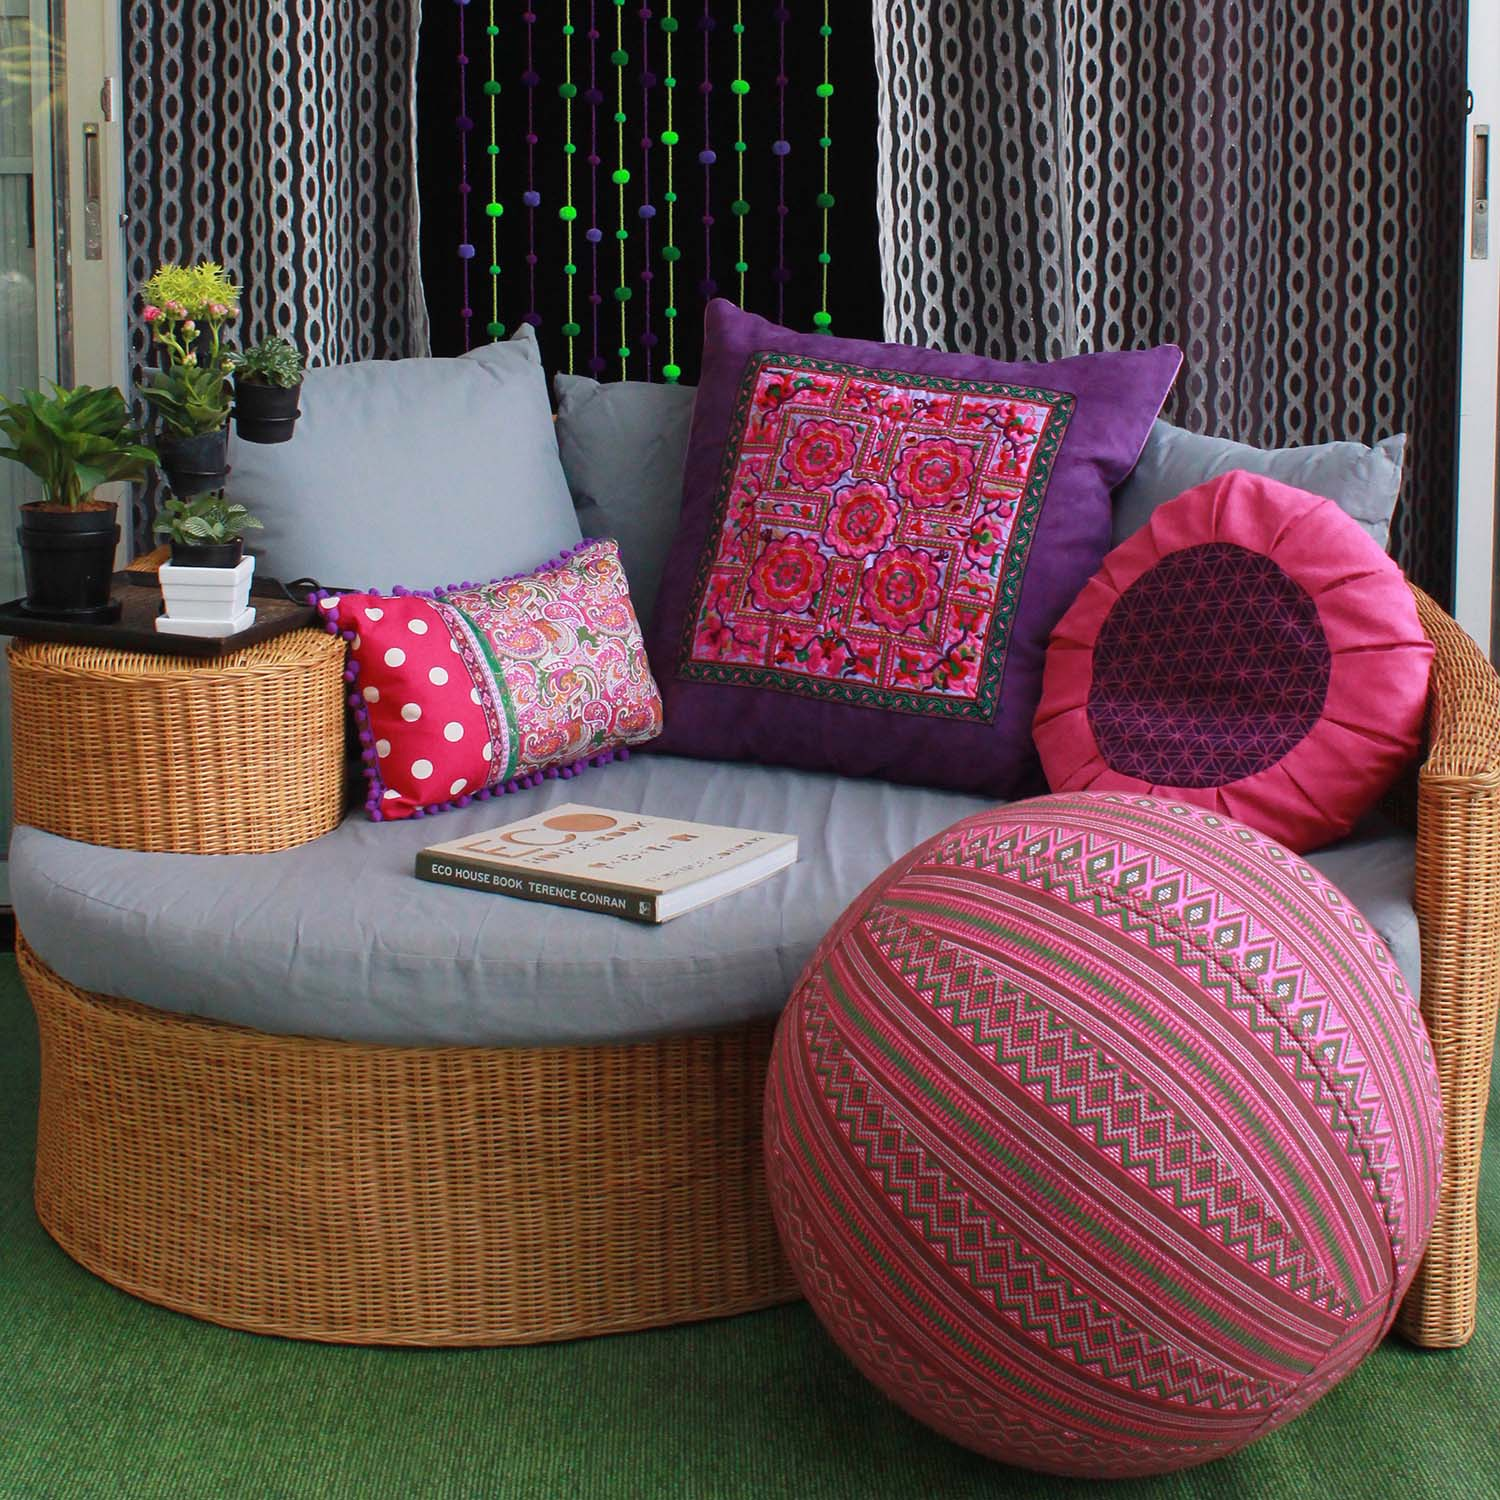 Colorful fair trade yoga ball covers and bright pillows from global groove life come in multiple colors and prints!